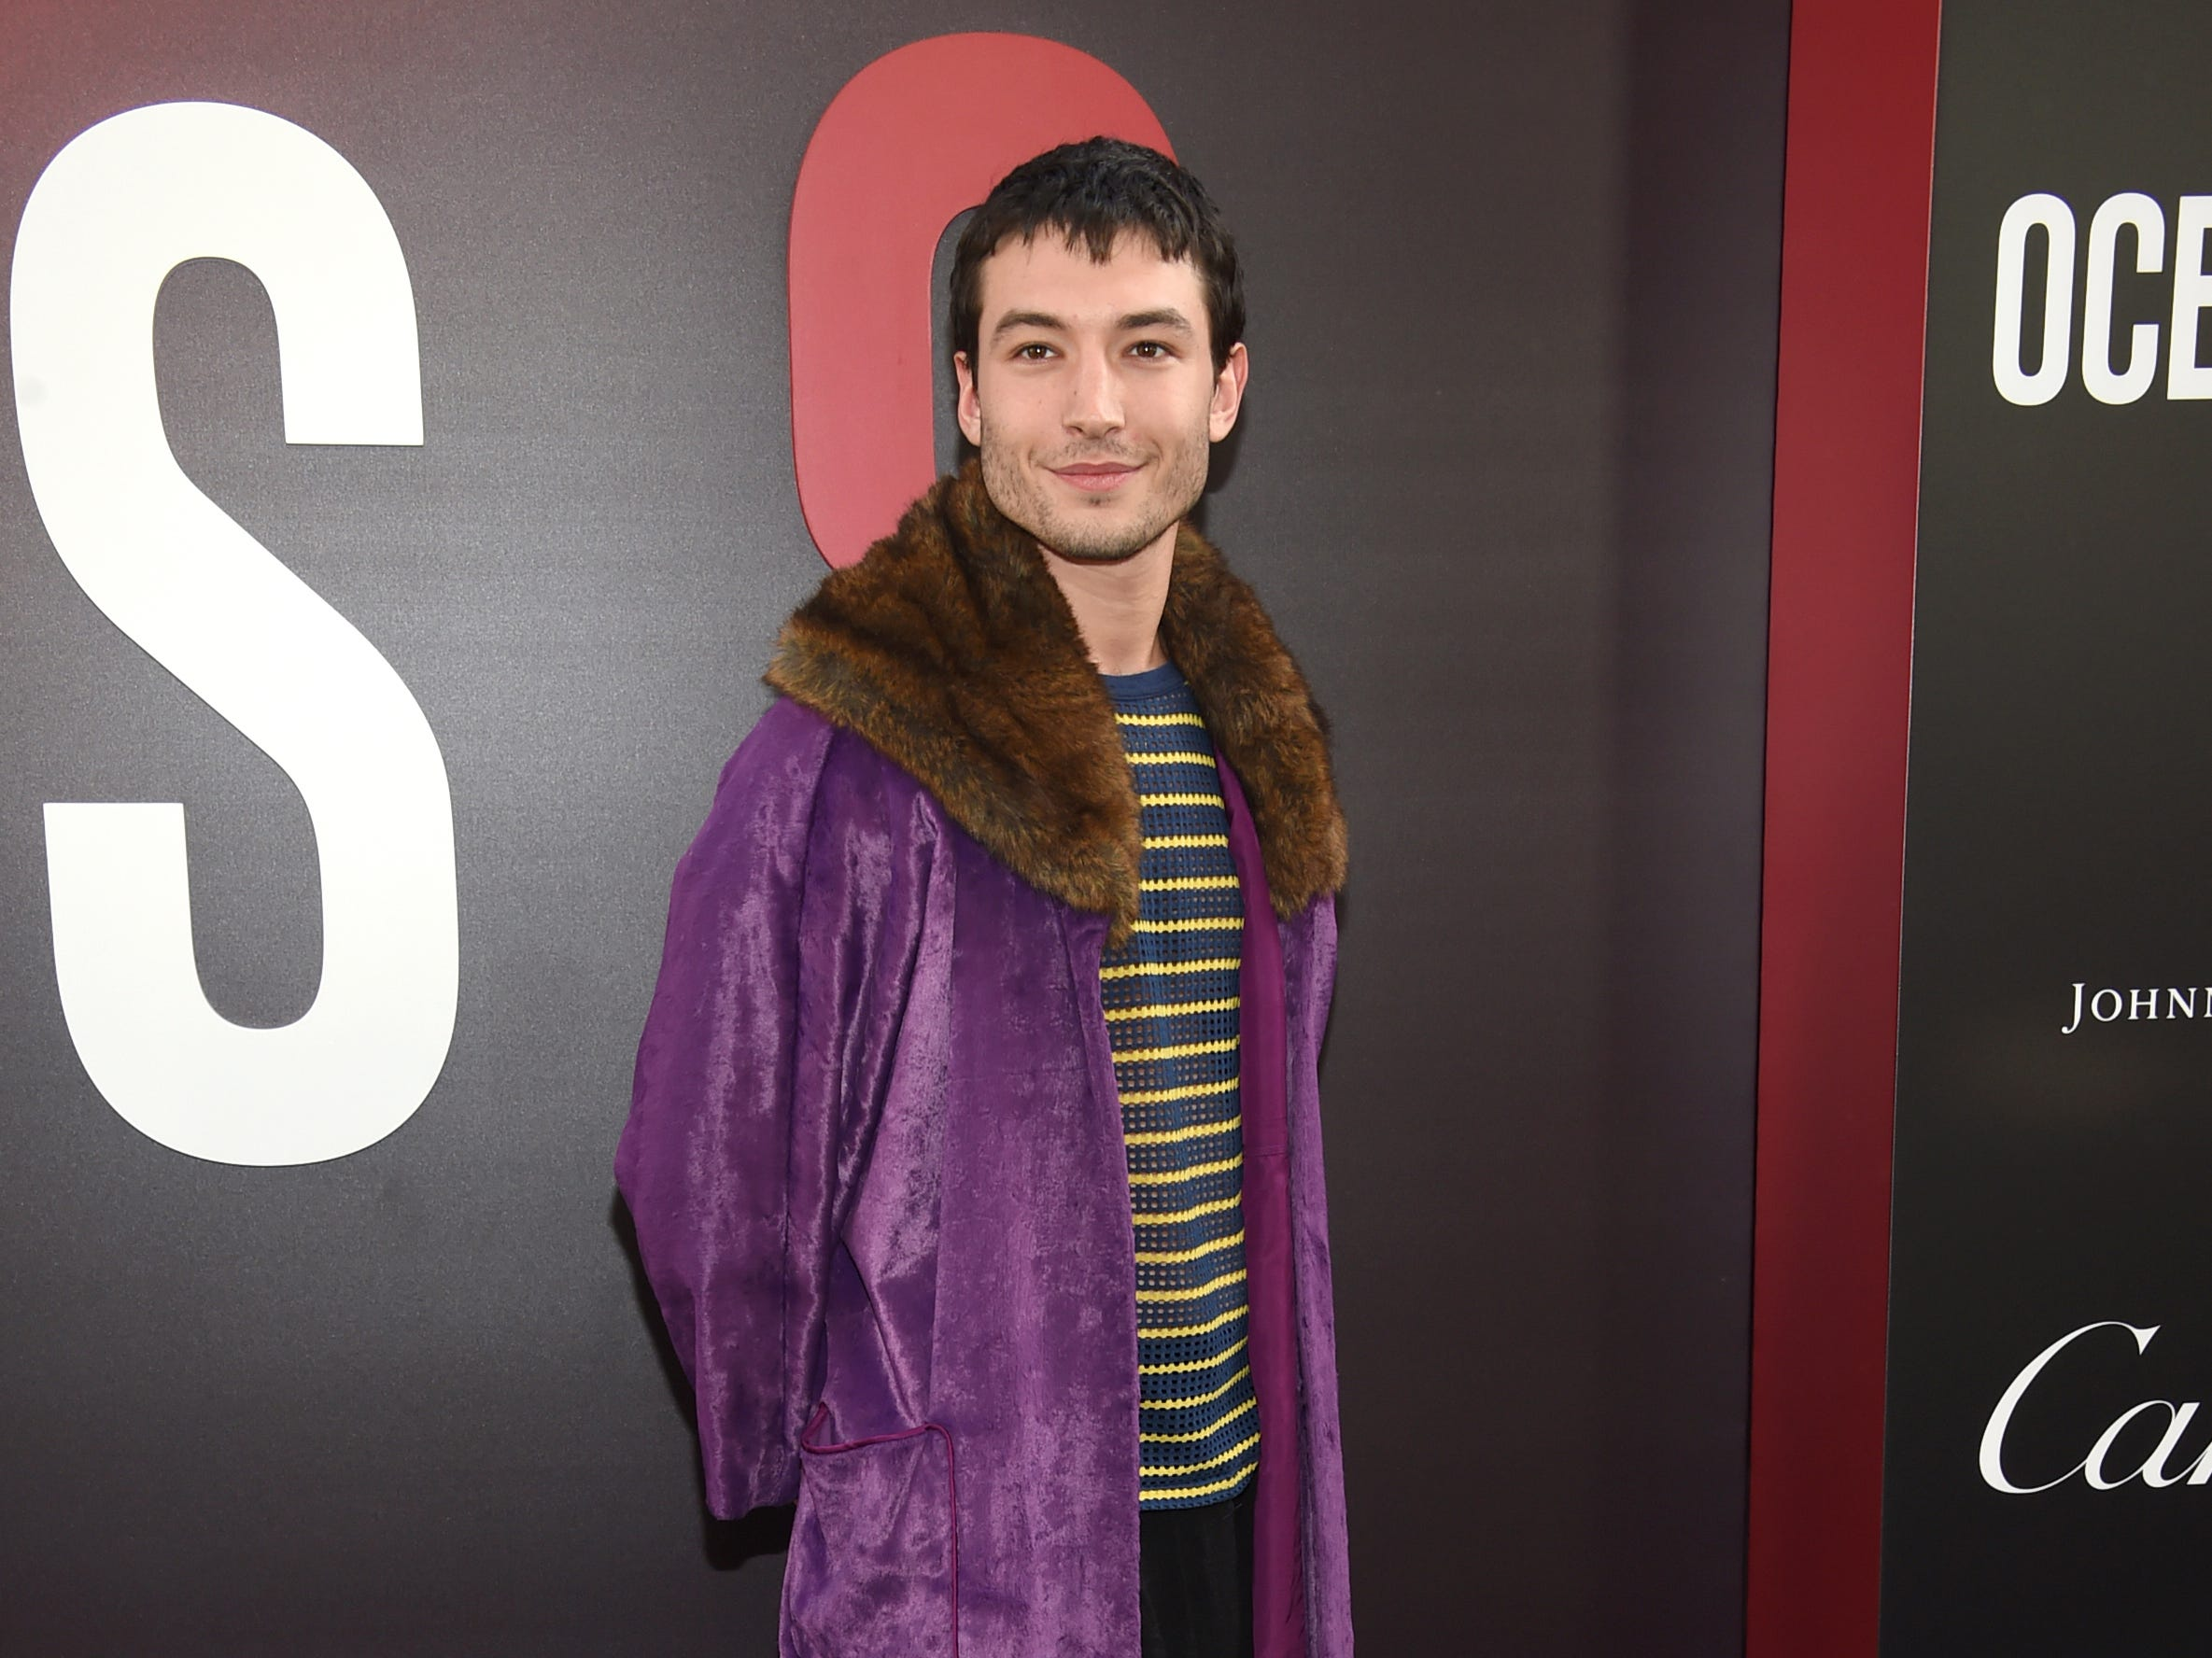 """Ezra Miller attends the world premiere of """"Ocean's 8"""" at Alice Tully Hall on Tuesday, June 5, 2018, in New York. (Photo by Evan Agostini/Invision/AP) ORG XMIT: NYAK122"""